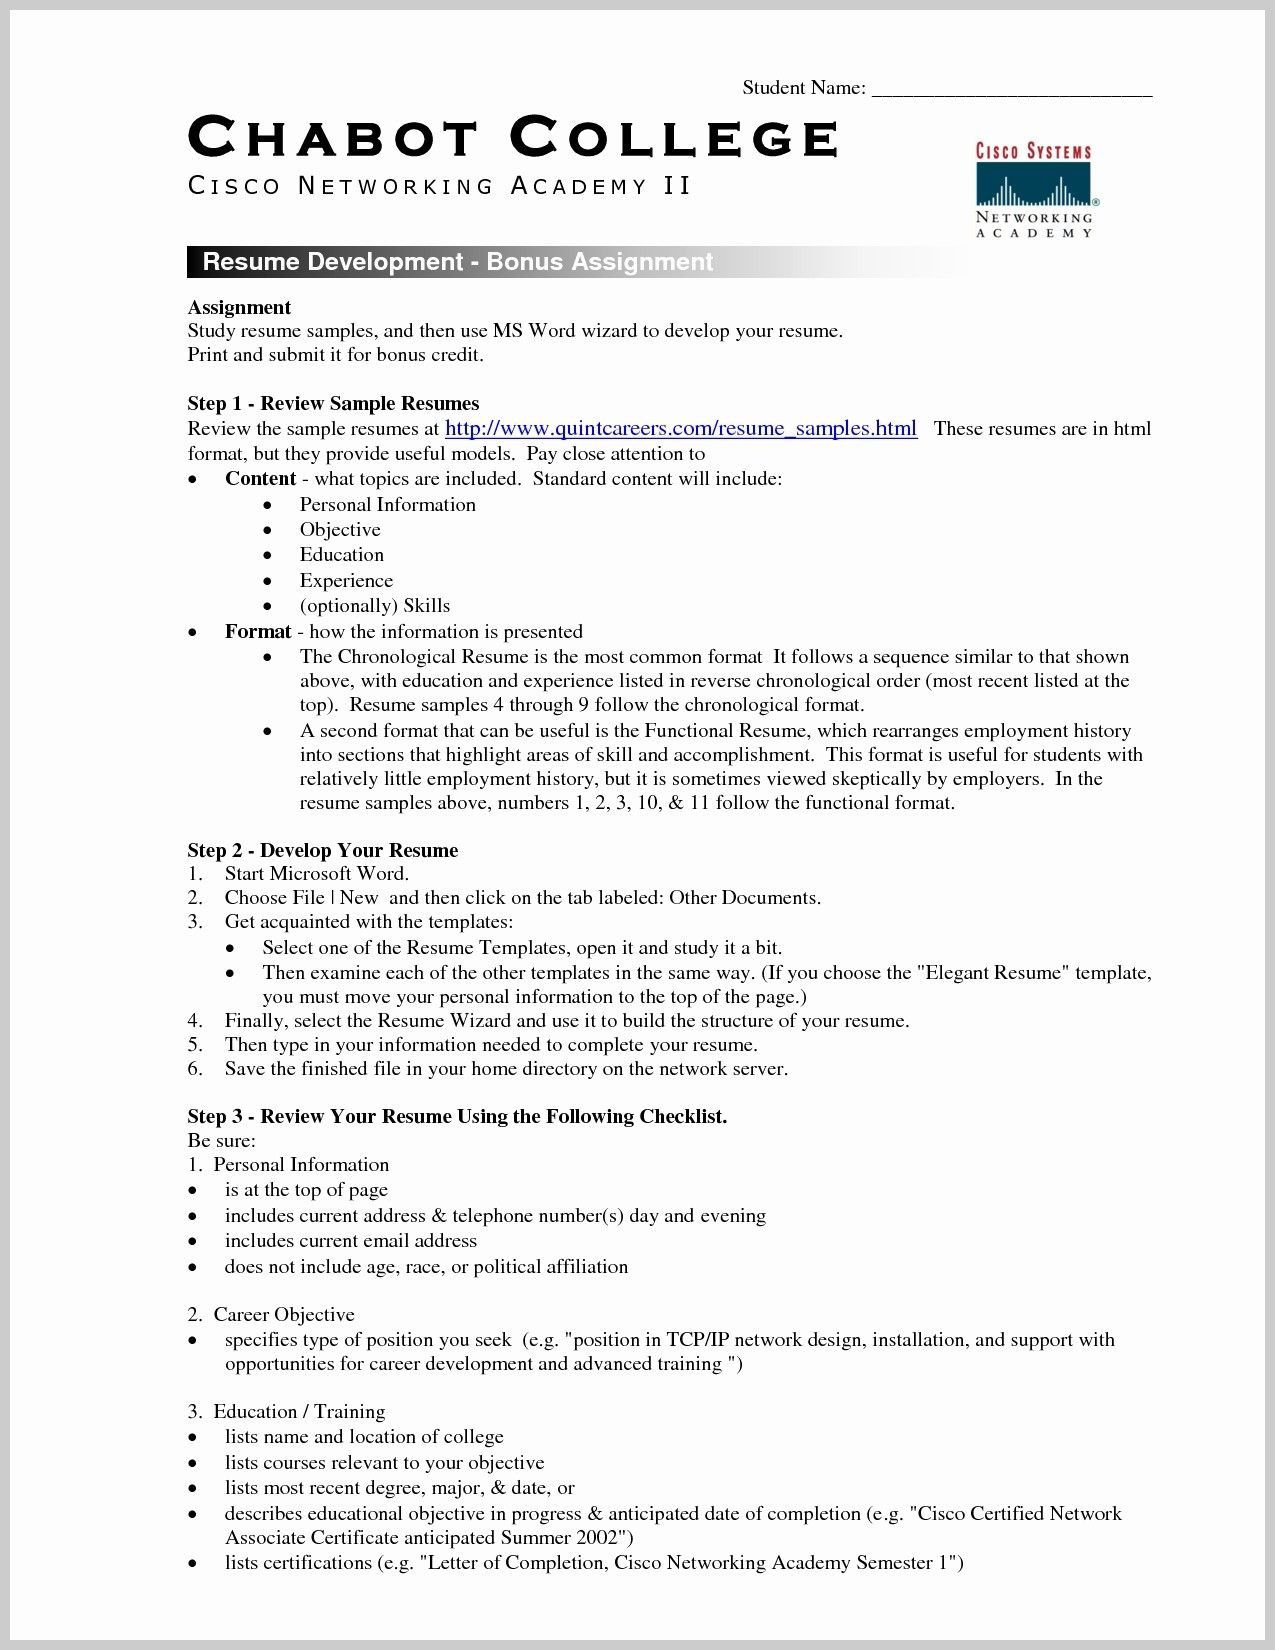 003 Simple Student Resume Template Microsoft Word Photo  College Download FreeFull